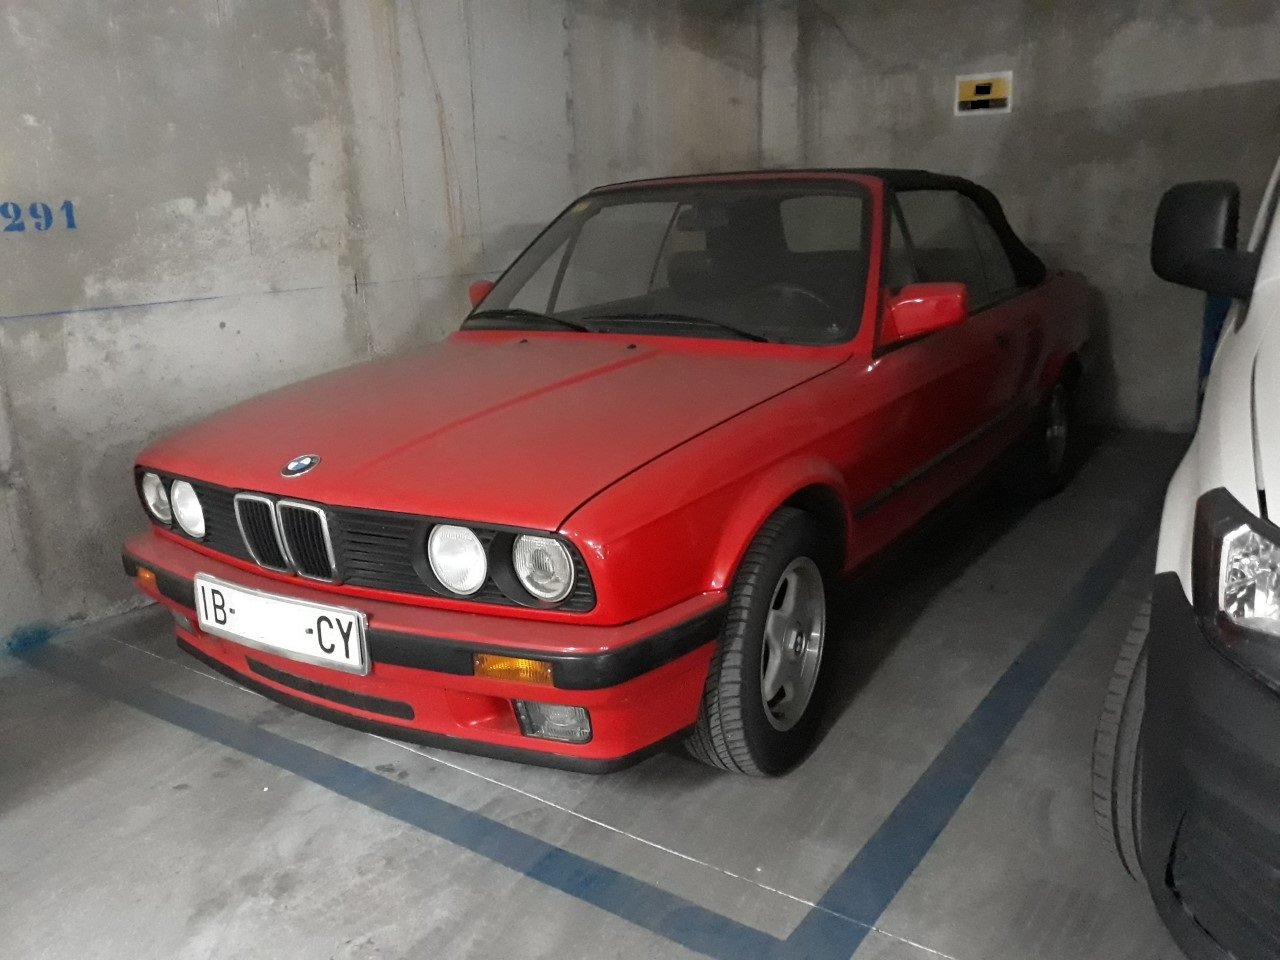 1991 BMW 318 Cabriolet automatic - only 96.000km LHD  For Sale (picture 1 of 2)